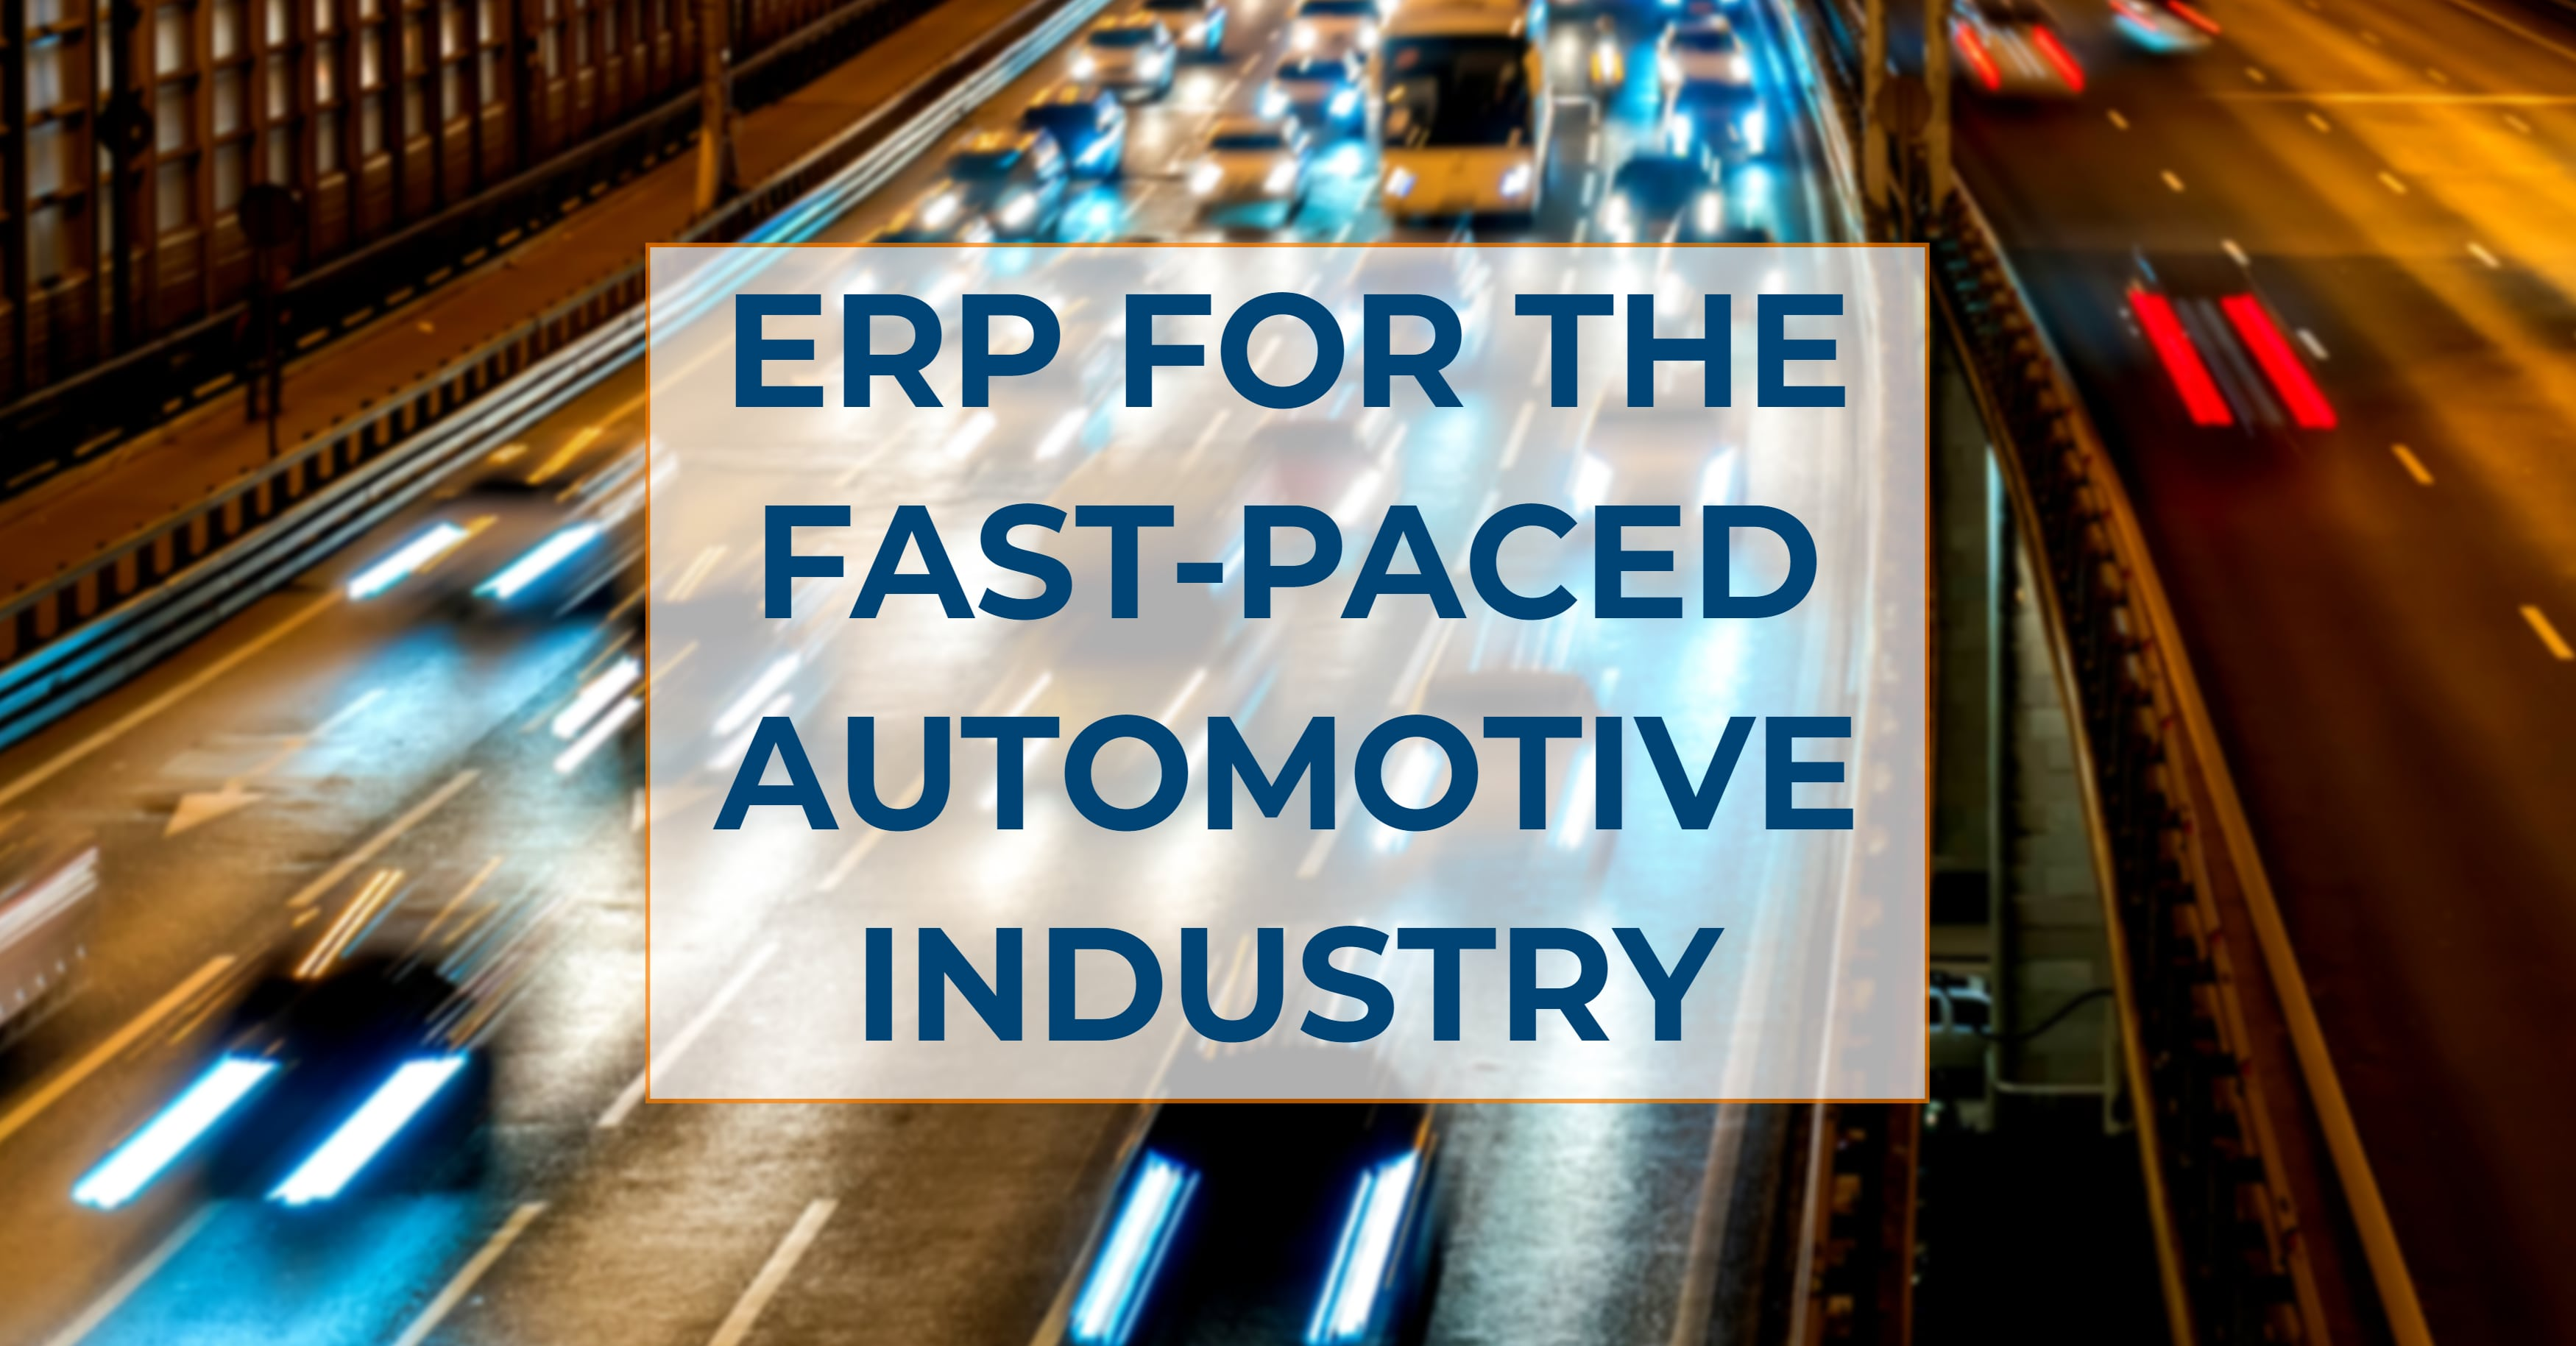 ERP Automotive Industry